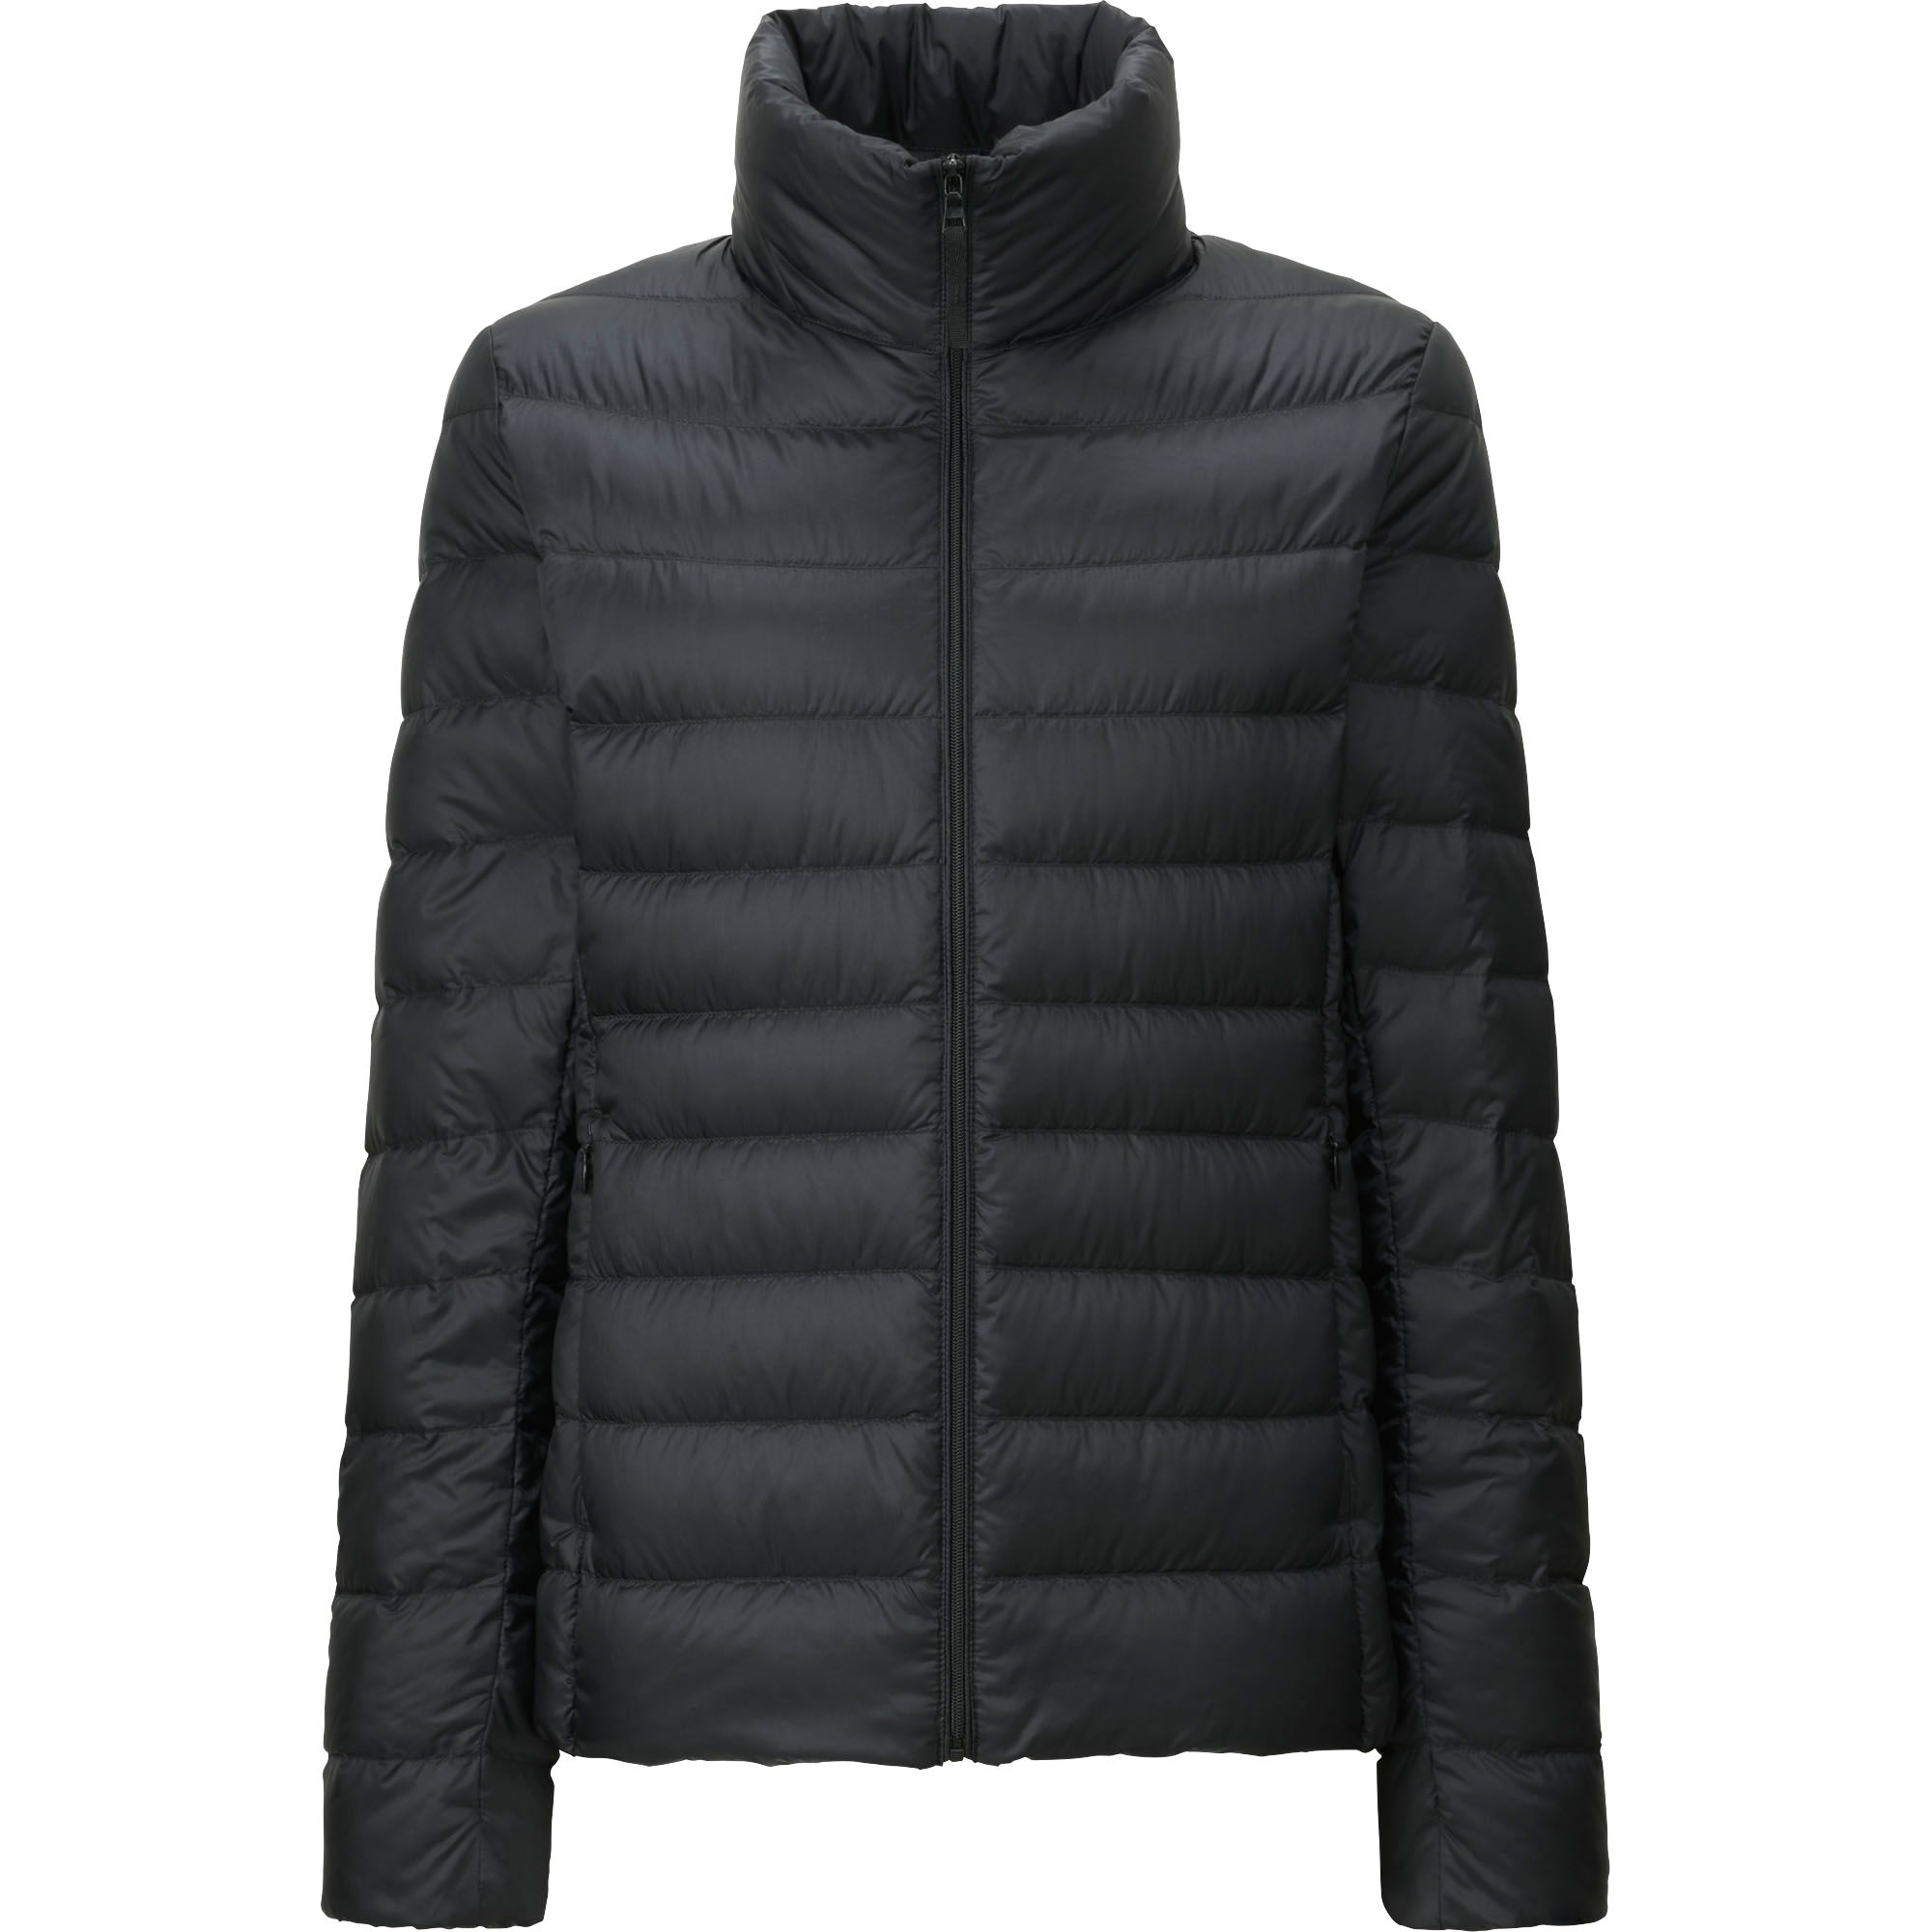 uniqlo women ultra light down jacket in black save 15 lyst. Black Bedroom Furniture Sets. Home Design Ideas